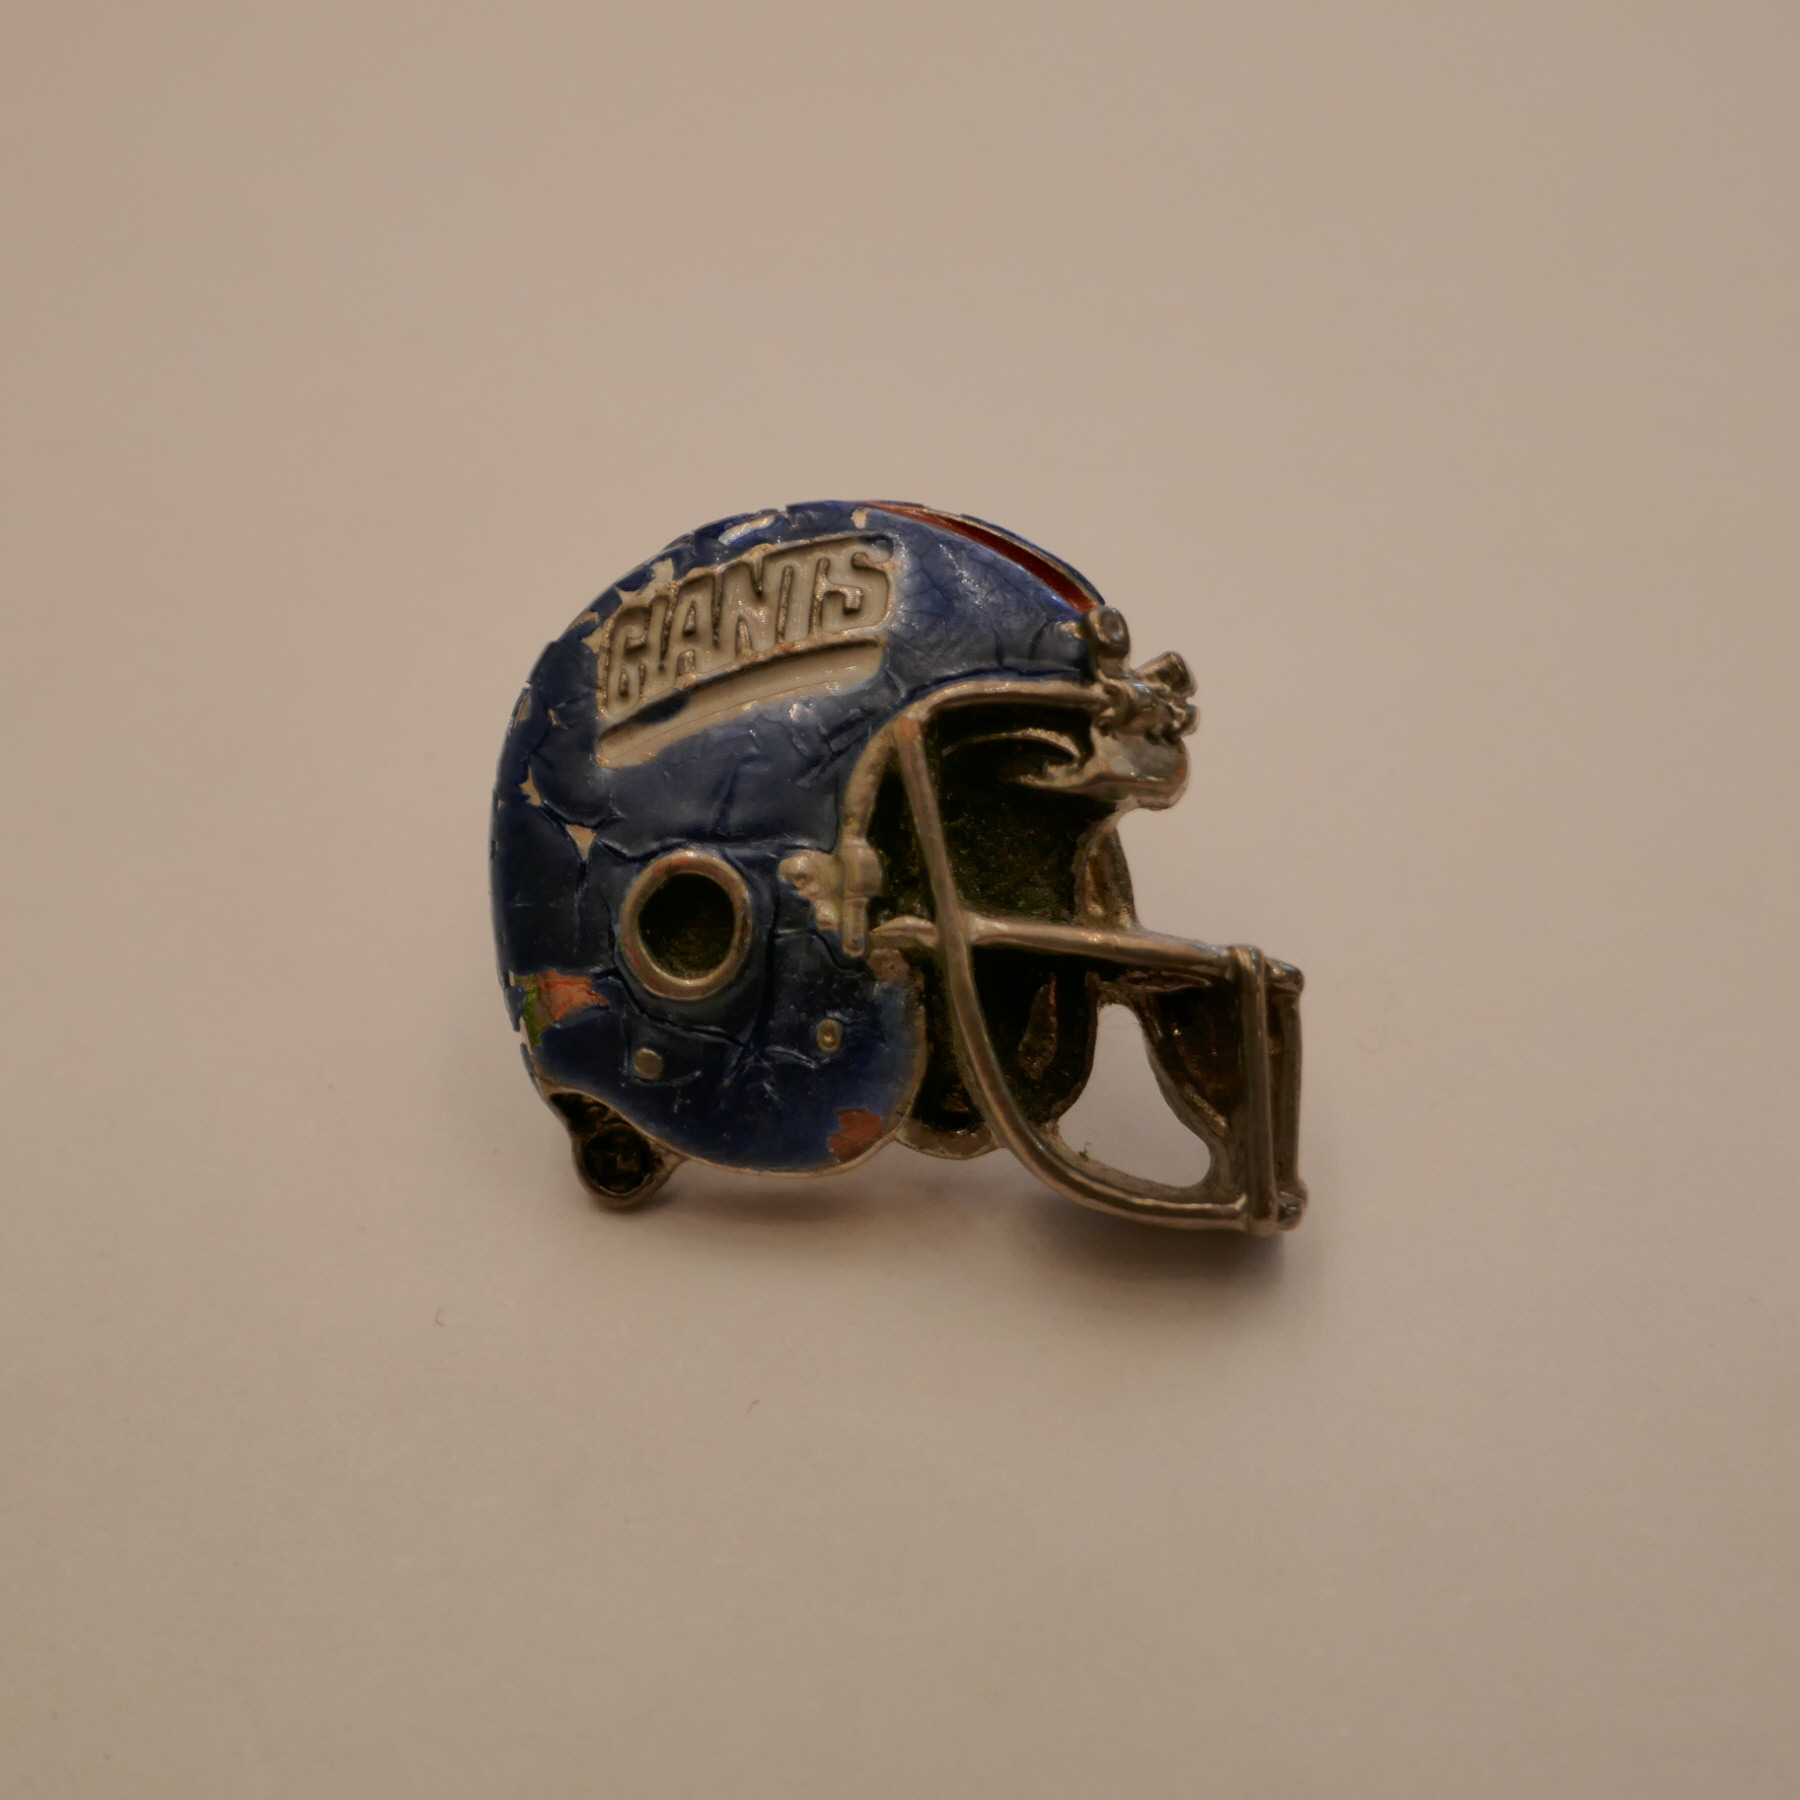 GIANTS HELMET pins